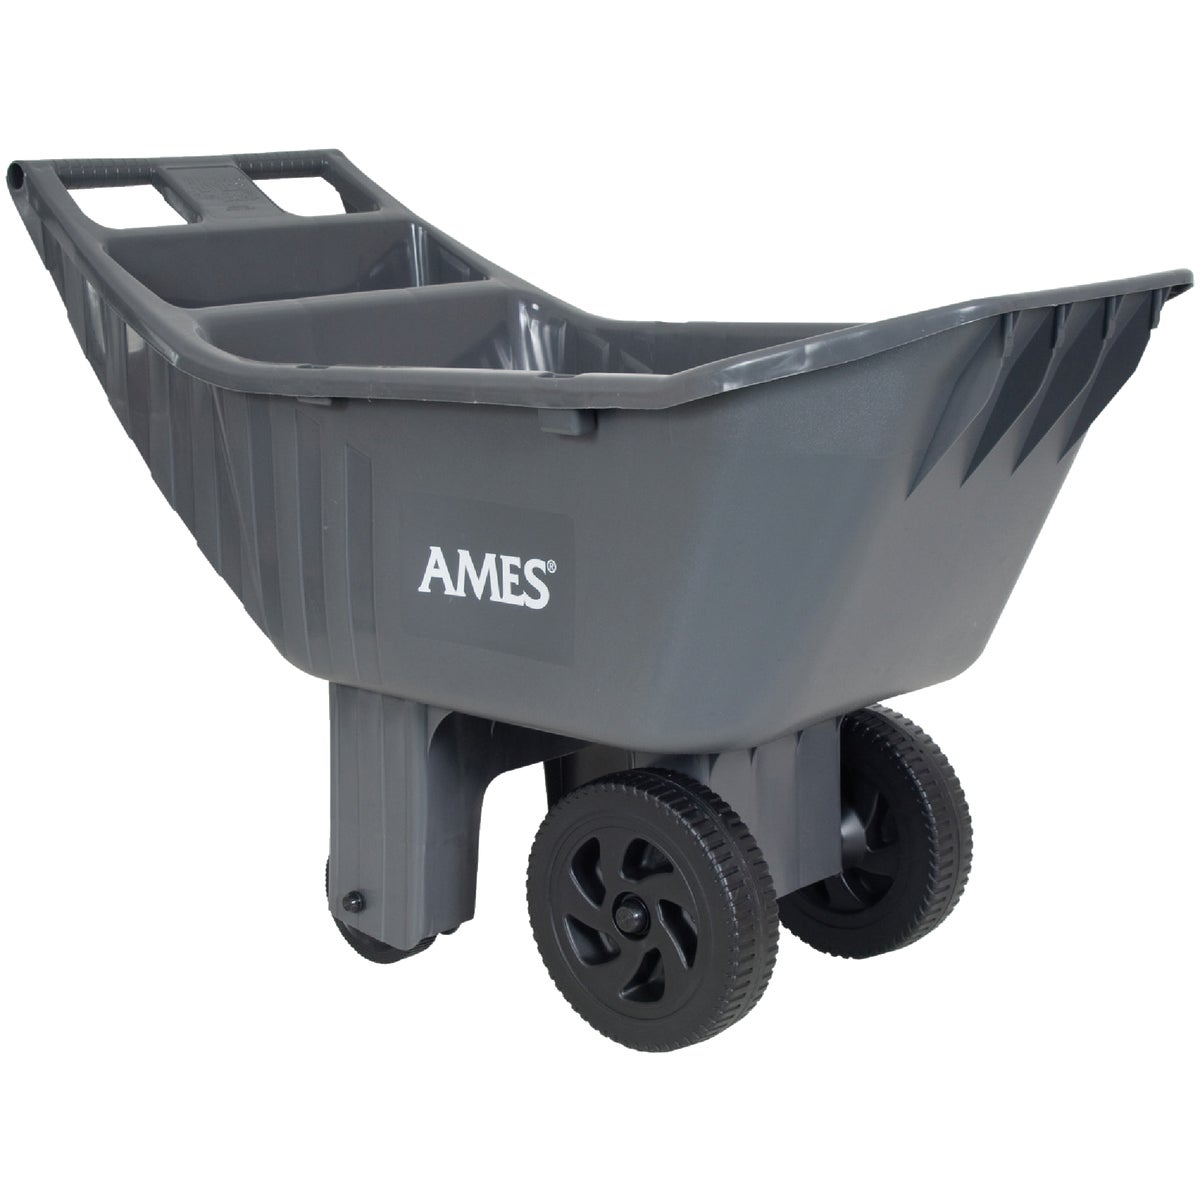 4CU FT POLY GARDEN CART - 2463875 by Ames True Temper